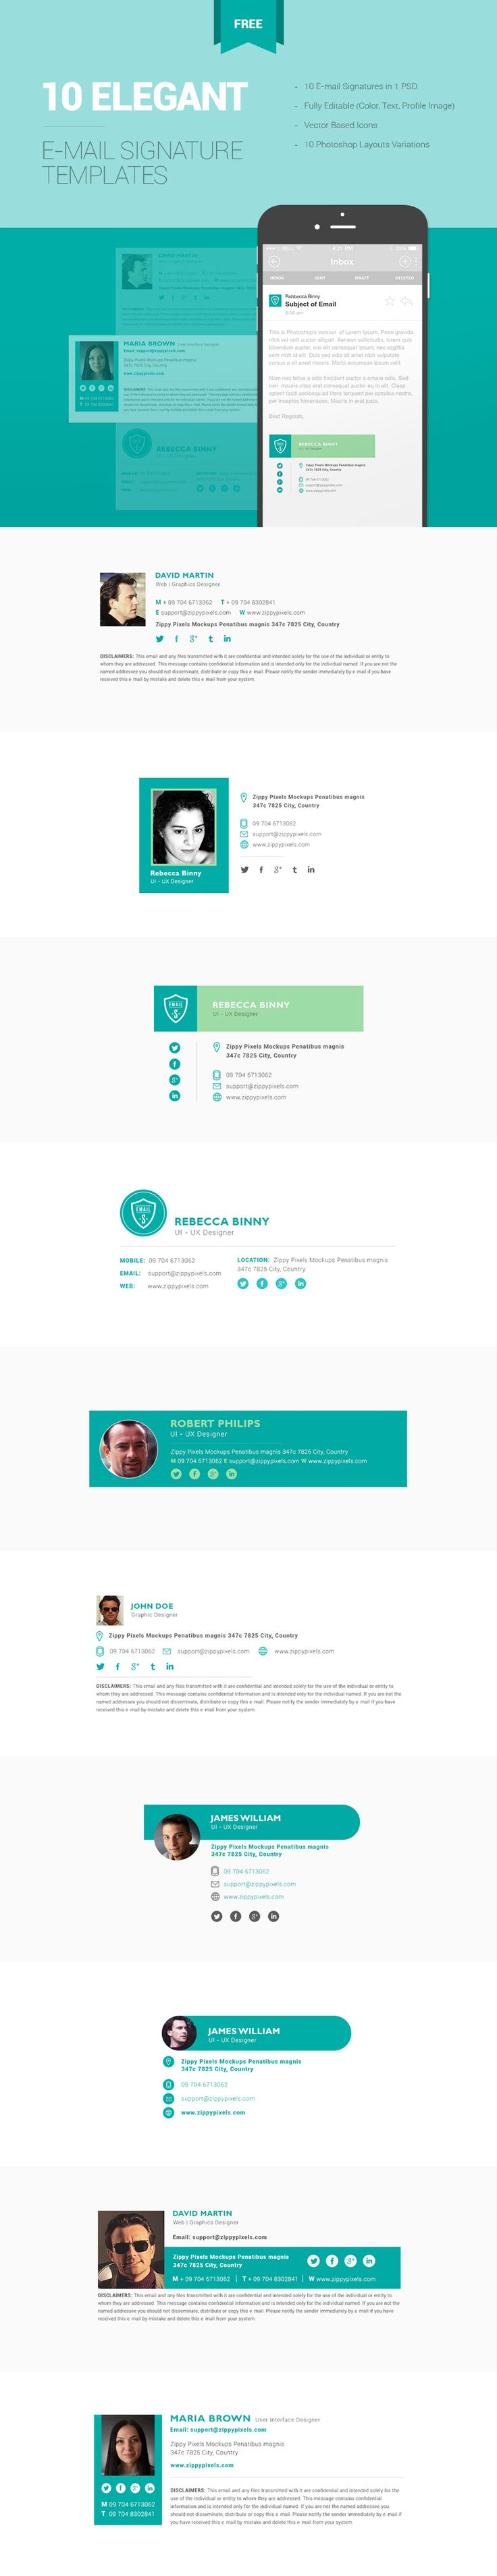 10 Free Email Signature Templates                                                                                                                                                                                 More